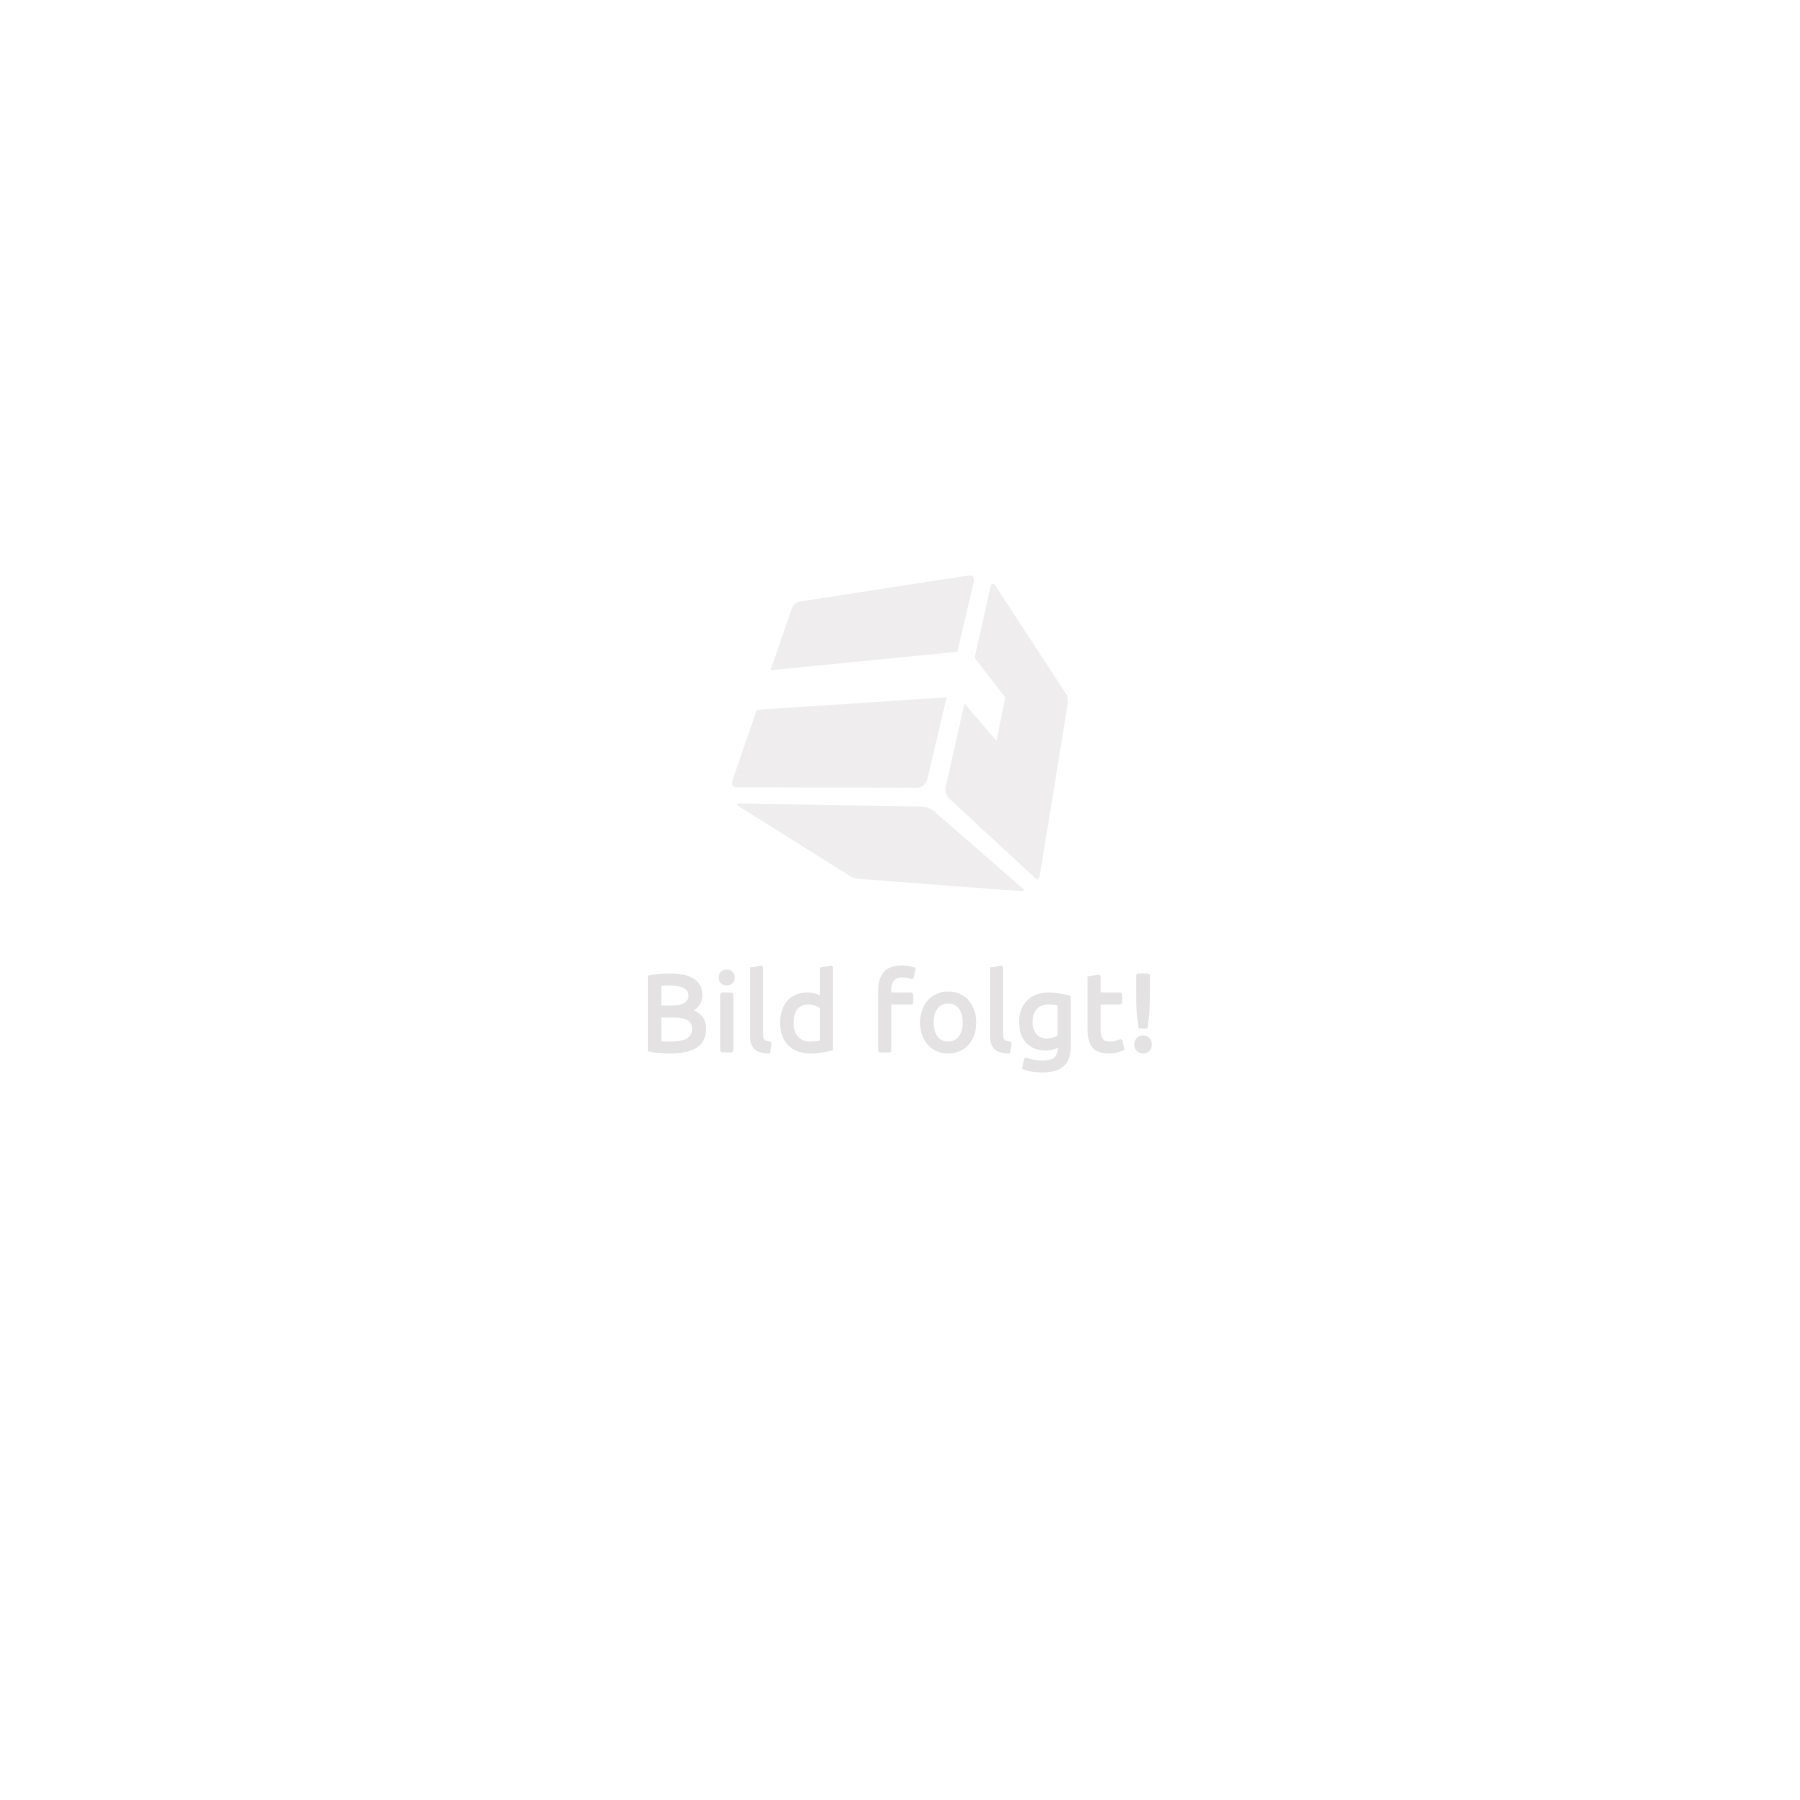 Tabouret de bar lot de 2, réglable 57 cm - 77 cm - New